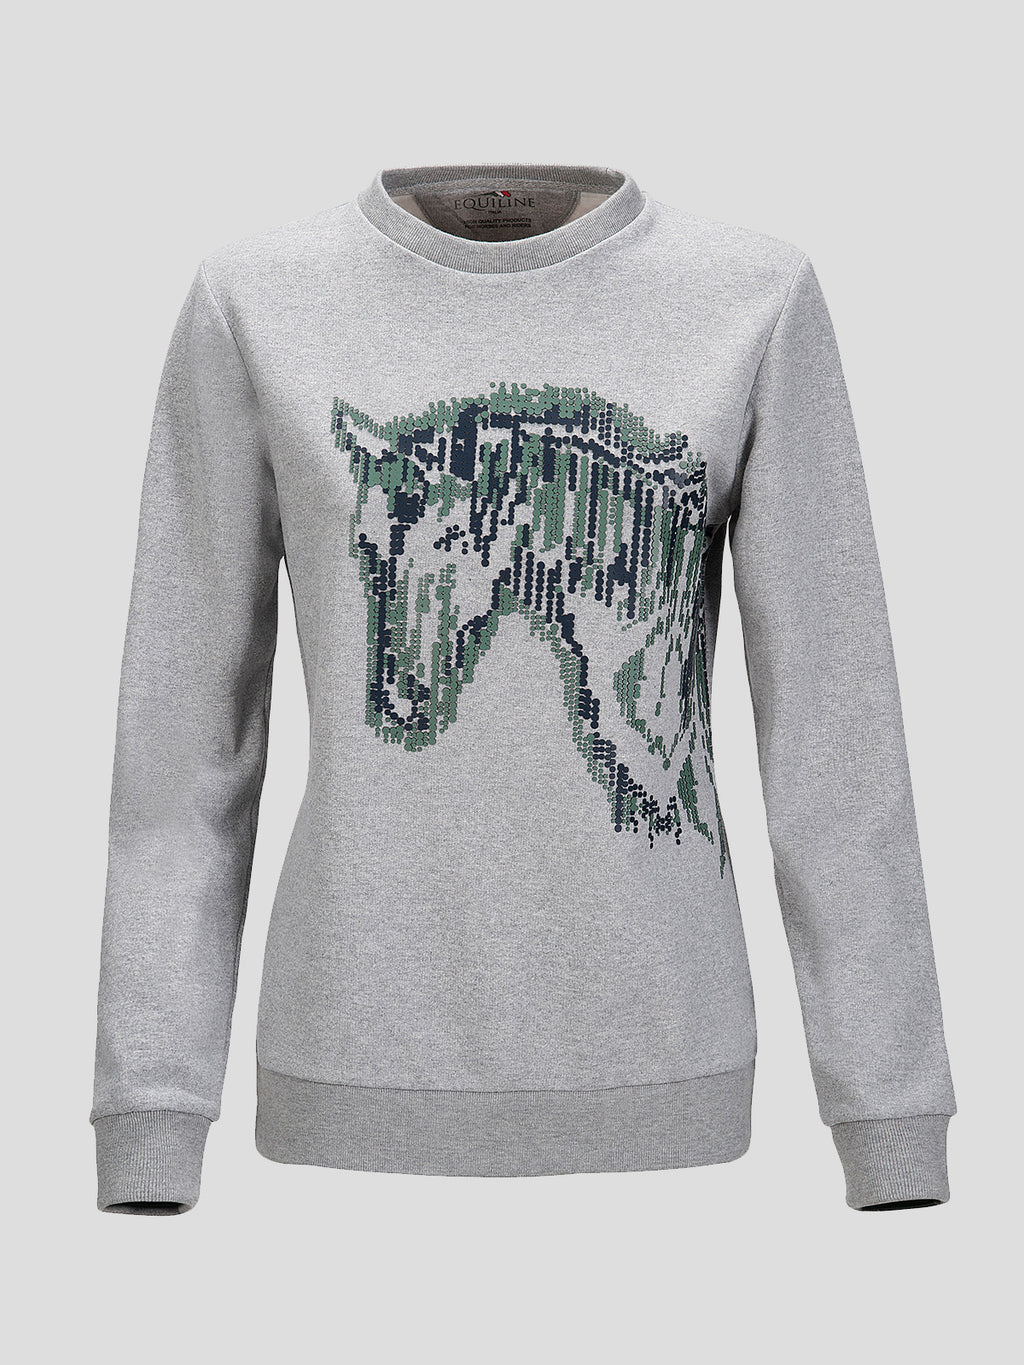 Caitriona Women's Crewneck Sweatshirt with Horse Graphic